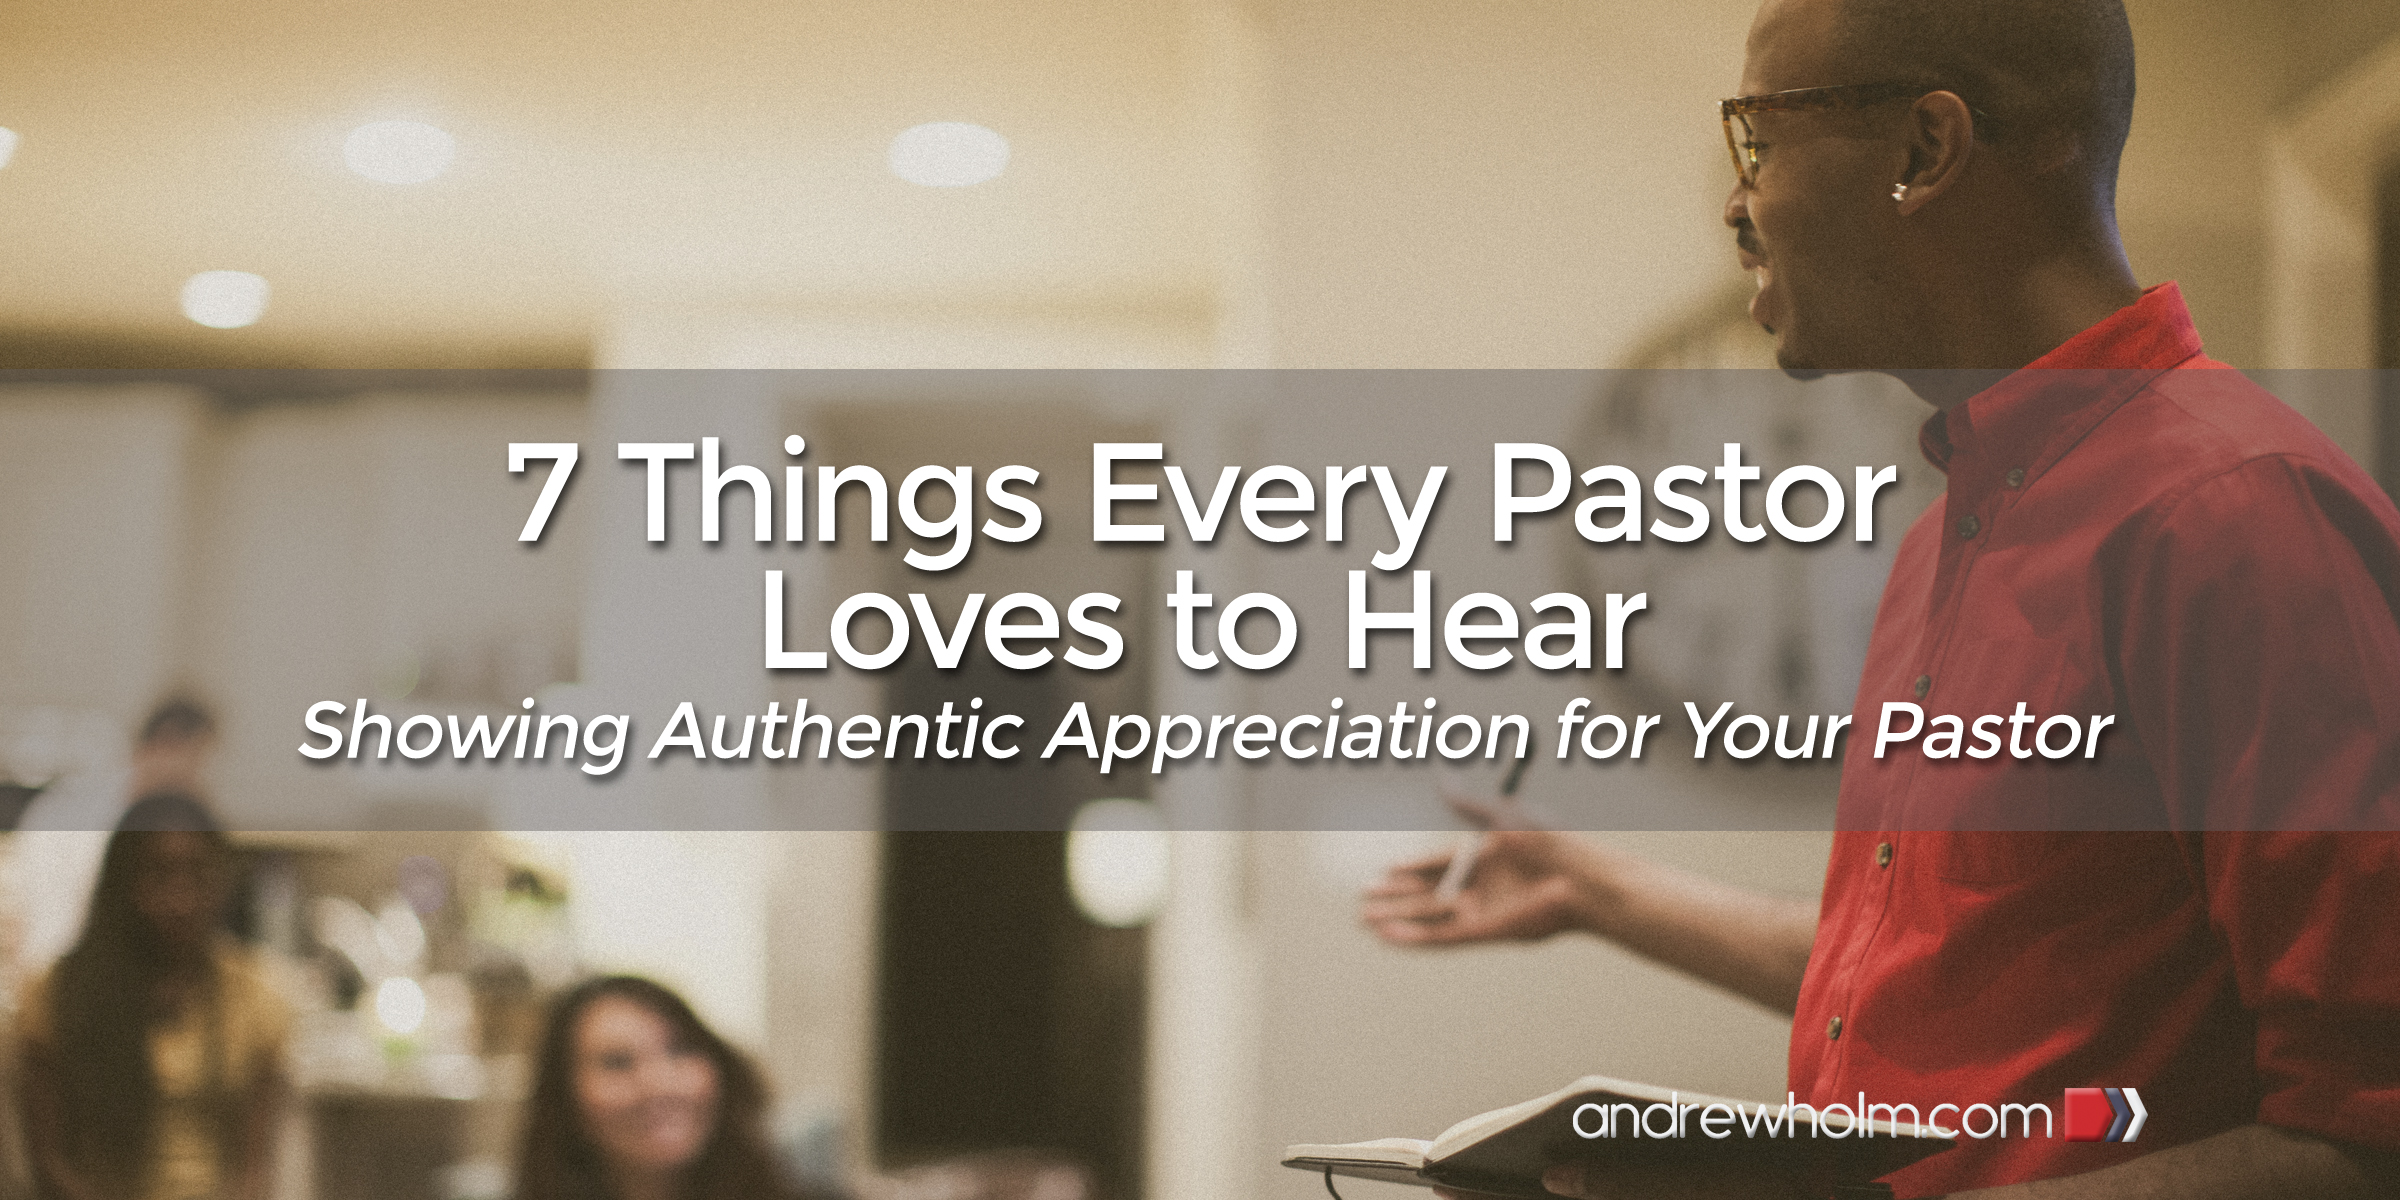 7 Things Every Pastor Loves To Hear